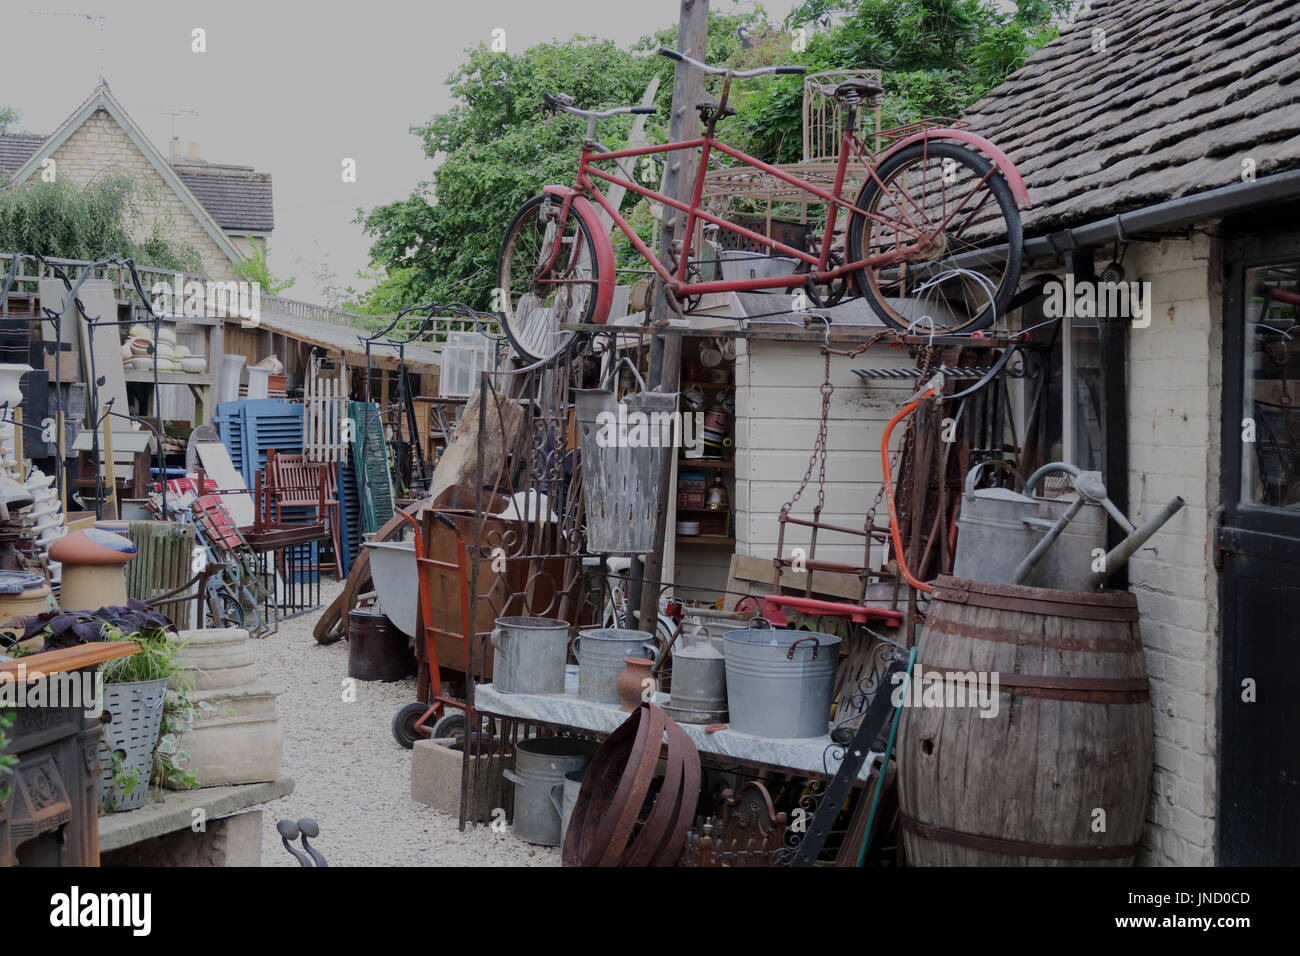 Untidy hoarders yard, Lechlade on Thames Stock Photo